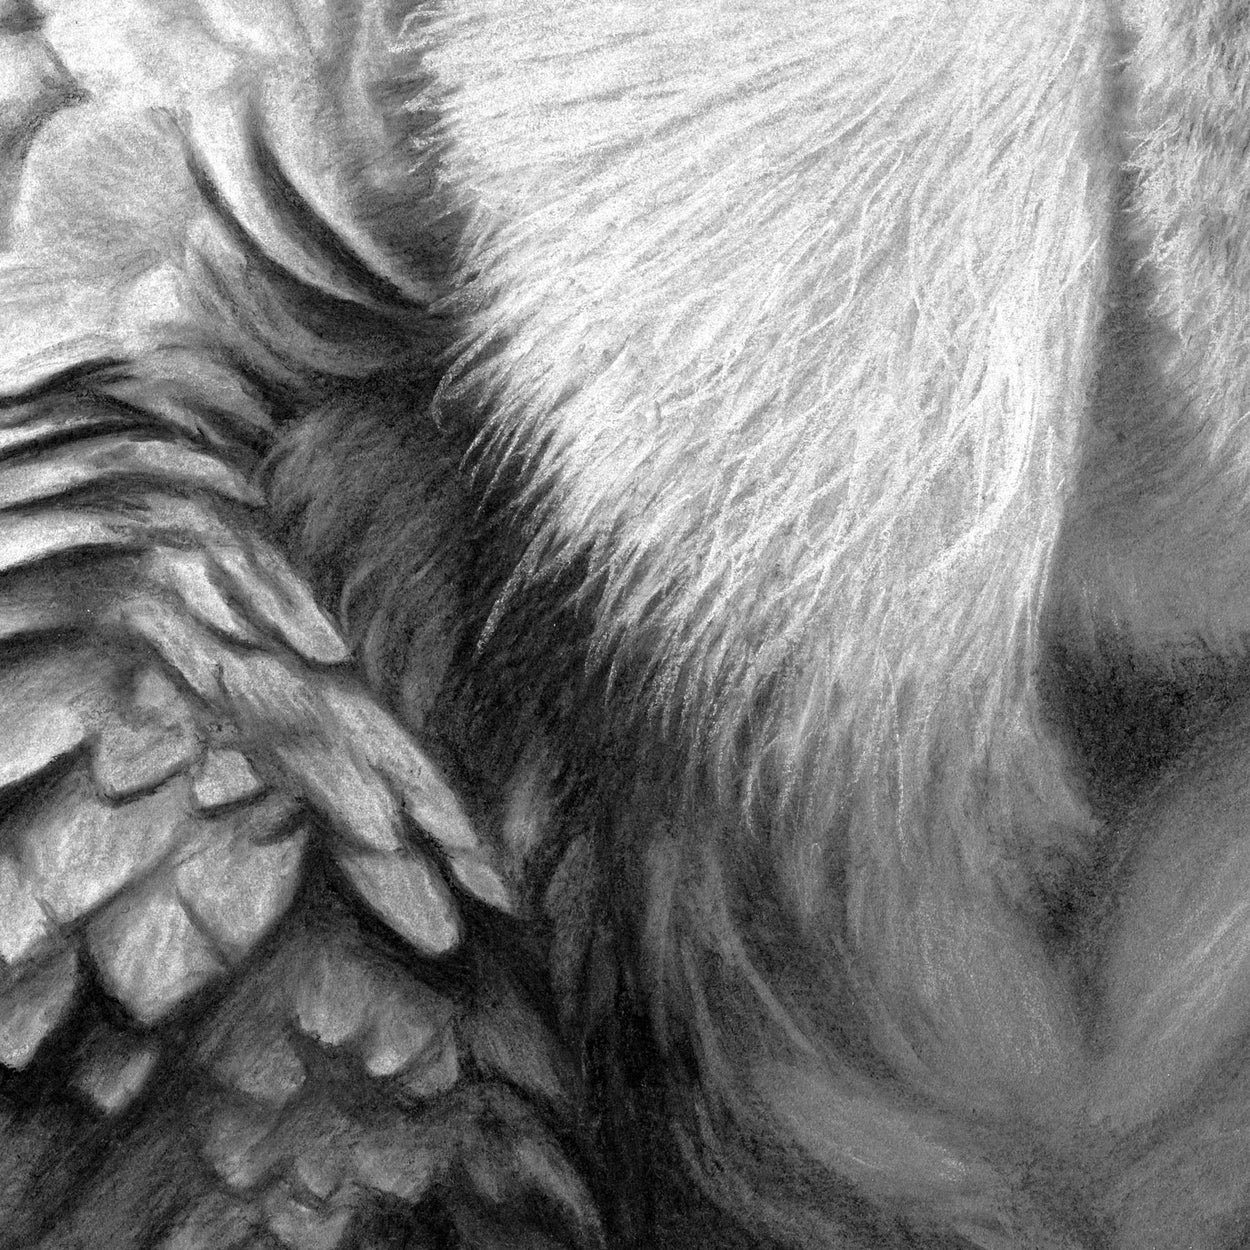 Griffon Vulture Feathers Close-up 2 - Jill Dimond